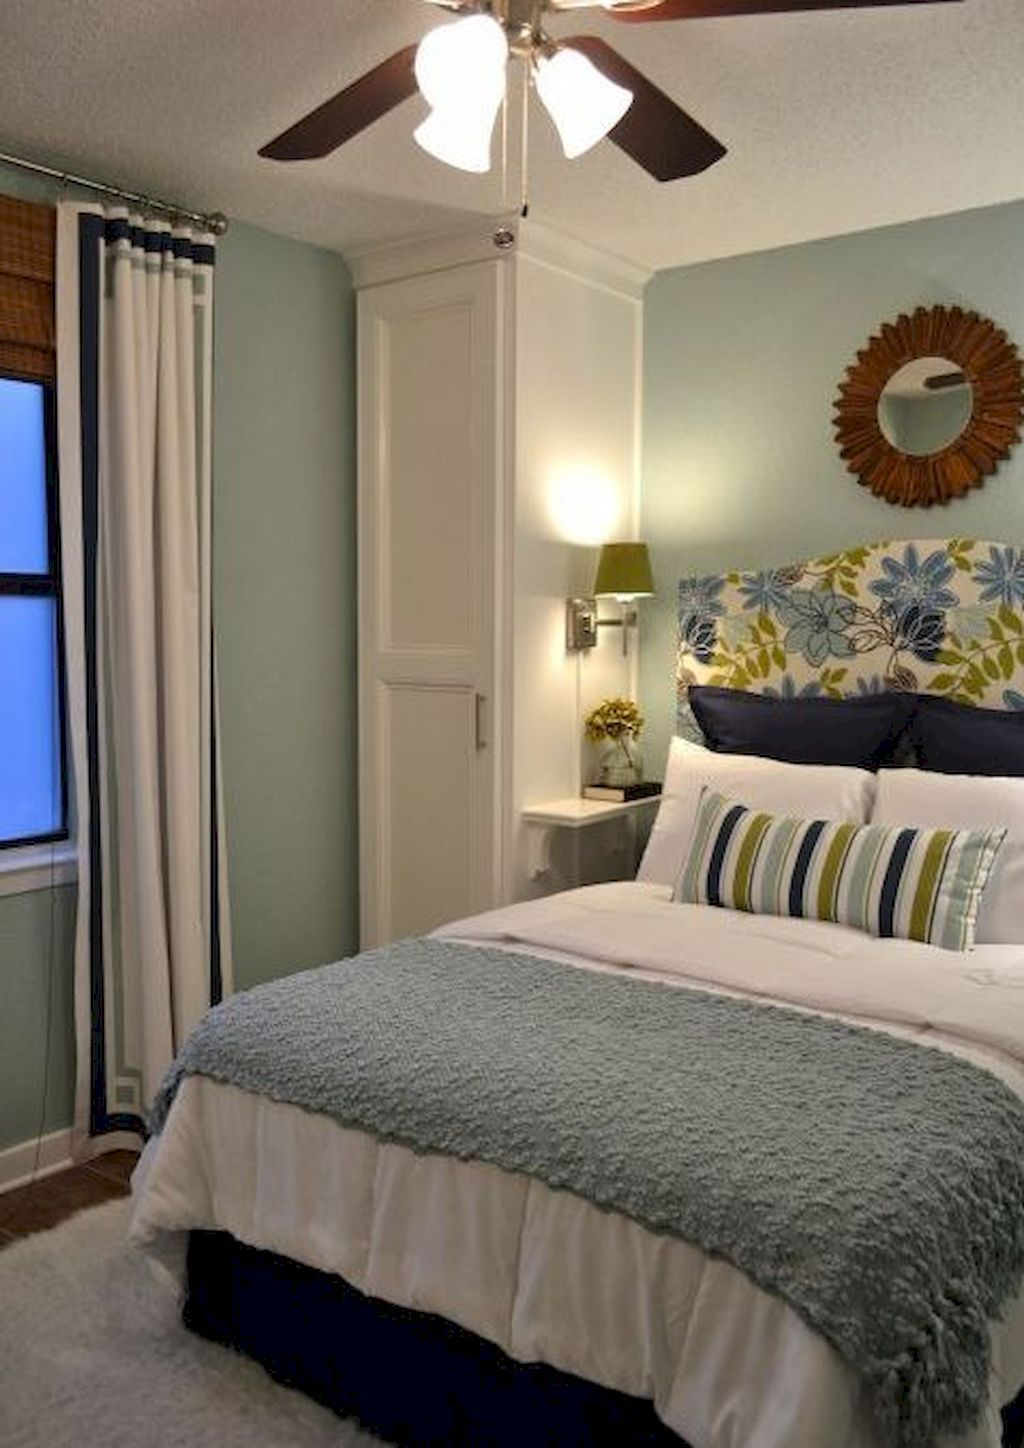 23 Fresh Small Master Bedroom Decor Ideas With Images Small Master Bedroom Budget Bedroom Makeover Remodel Bedroom